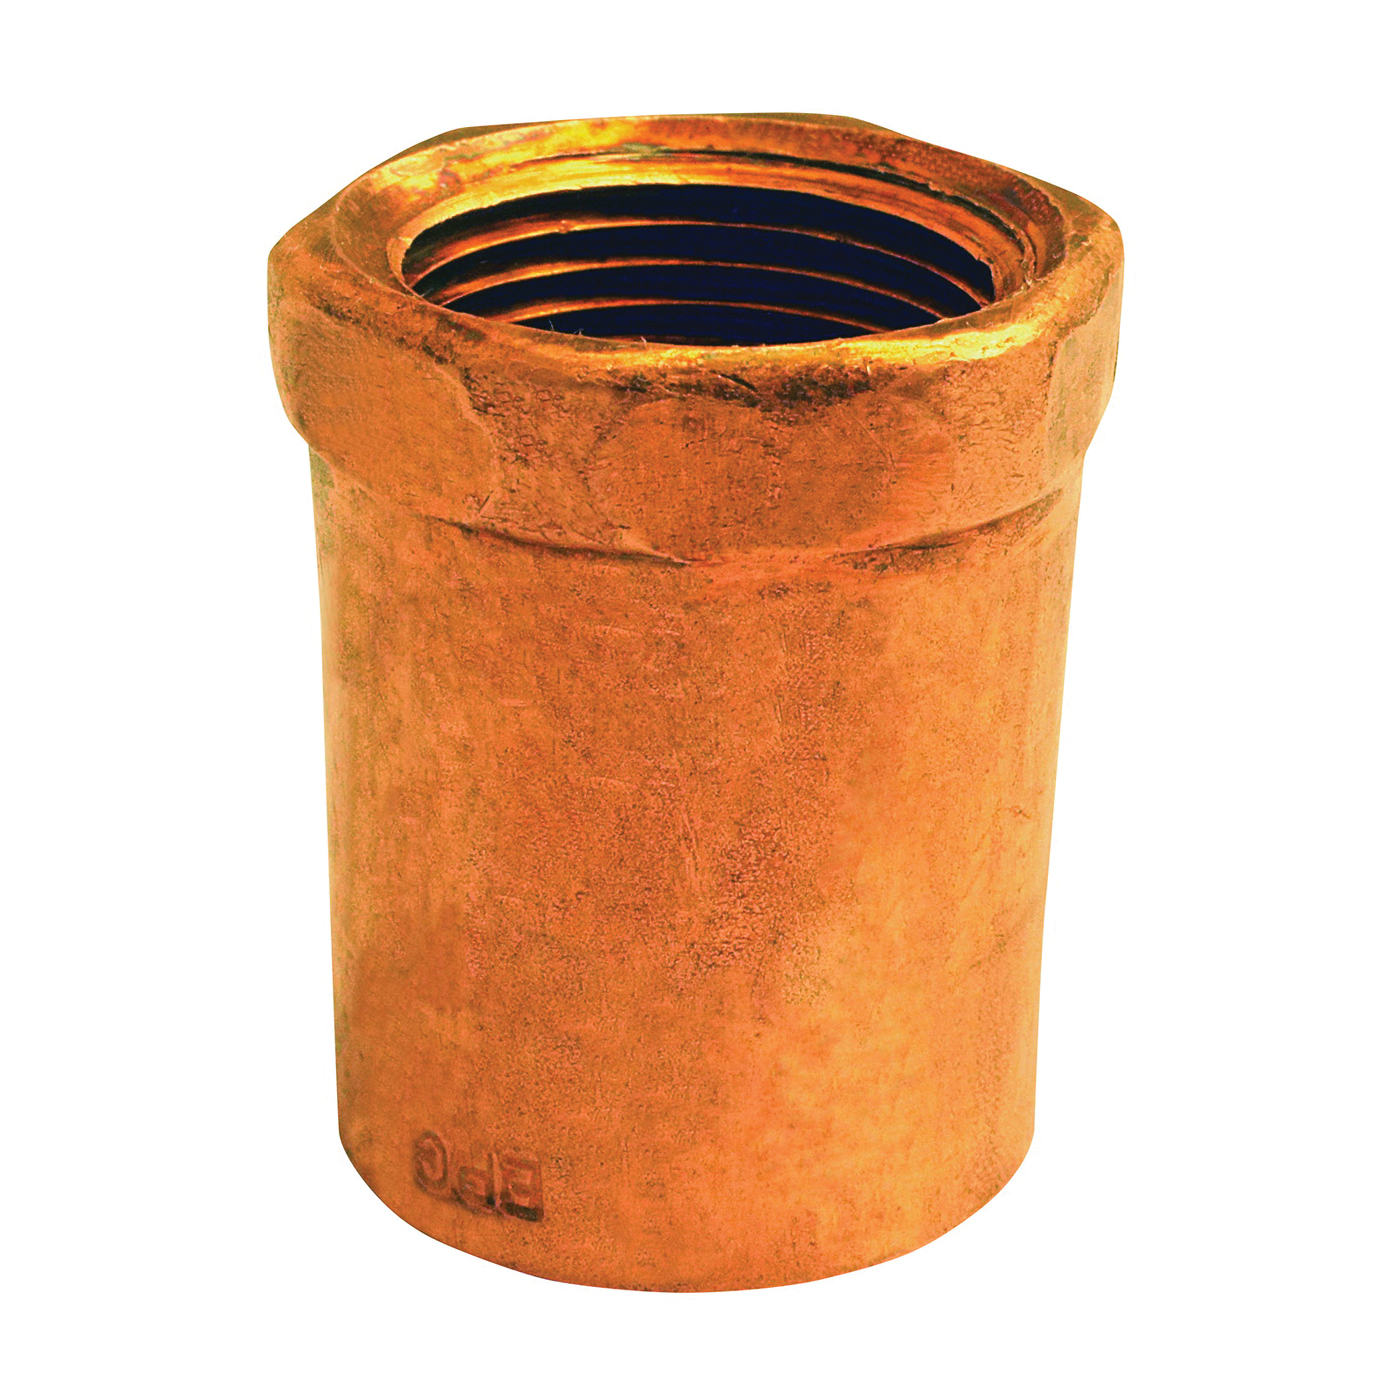 Picture of EPC 103R Series 30166 Reducing Adapter, 1 x 3/4 in, Sweat x FNPT, Copper